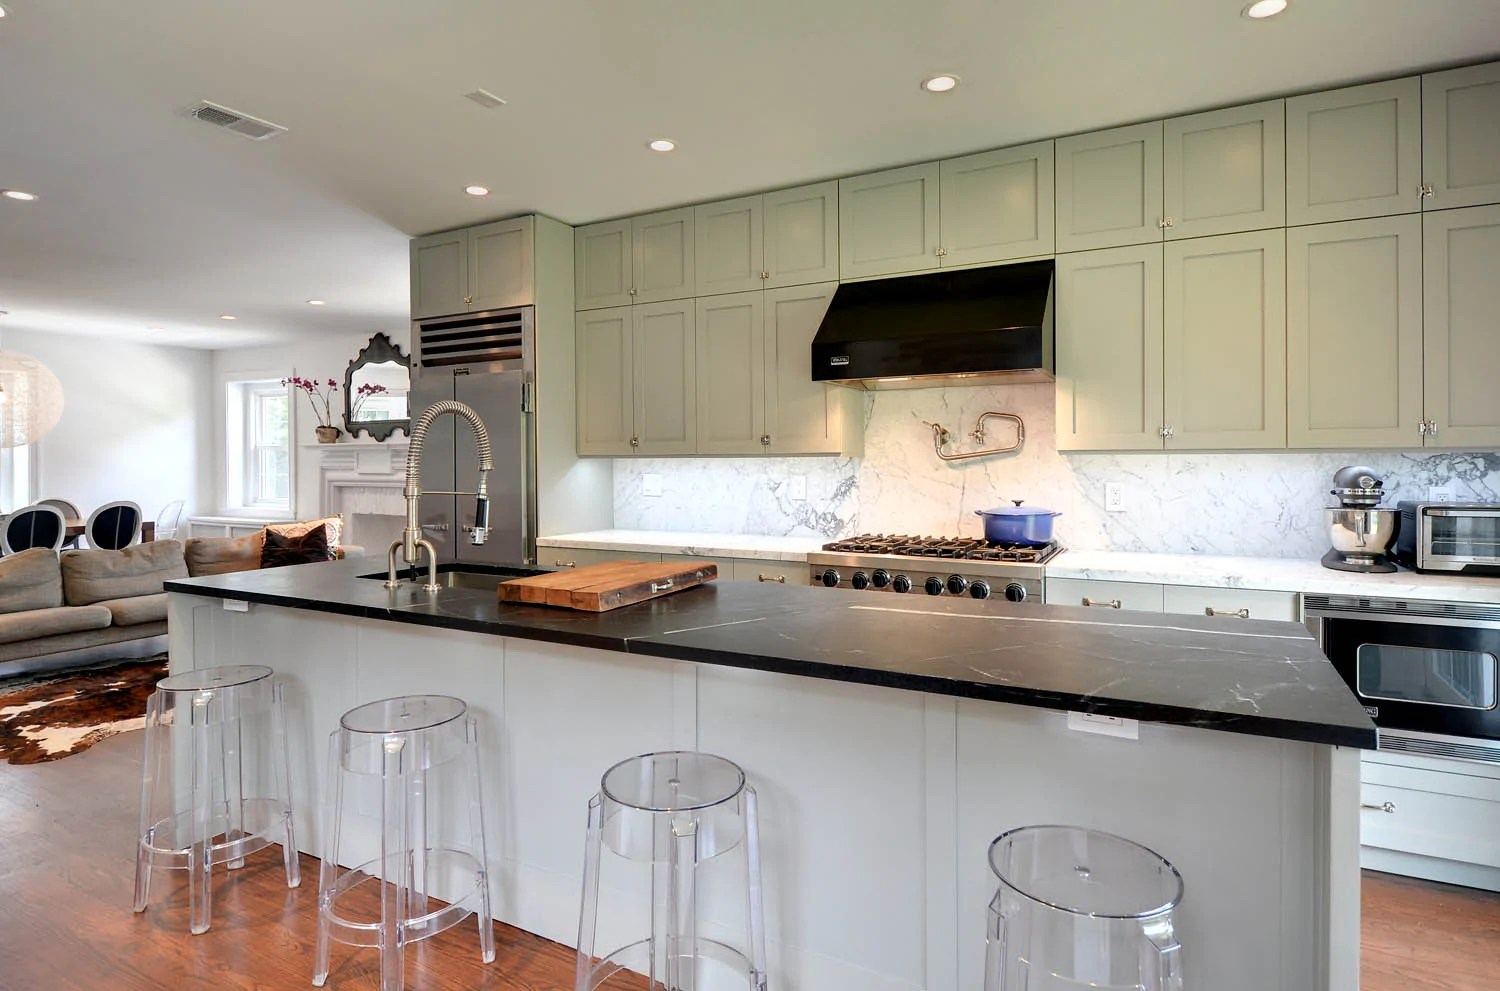 ikea kitchen kitchen cabinets ikea It s Time to Update Your Ikea Kitchen 10 Off ALL Supermatte and DIY Projects